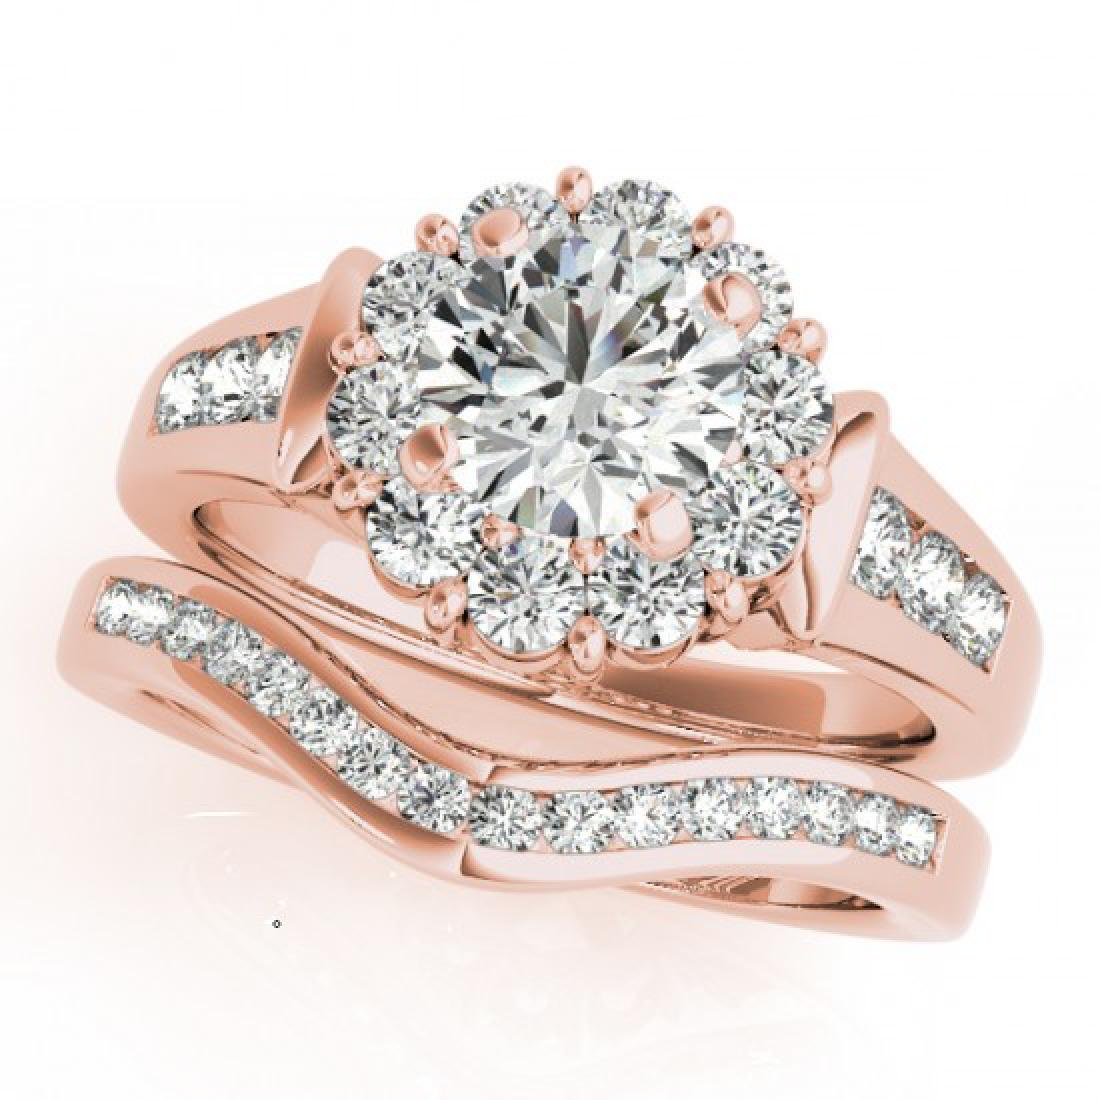 1.56 CTW Certified VS/SI Diamond 2Pc Wedding Set